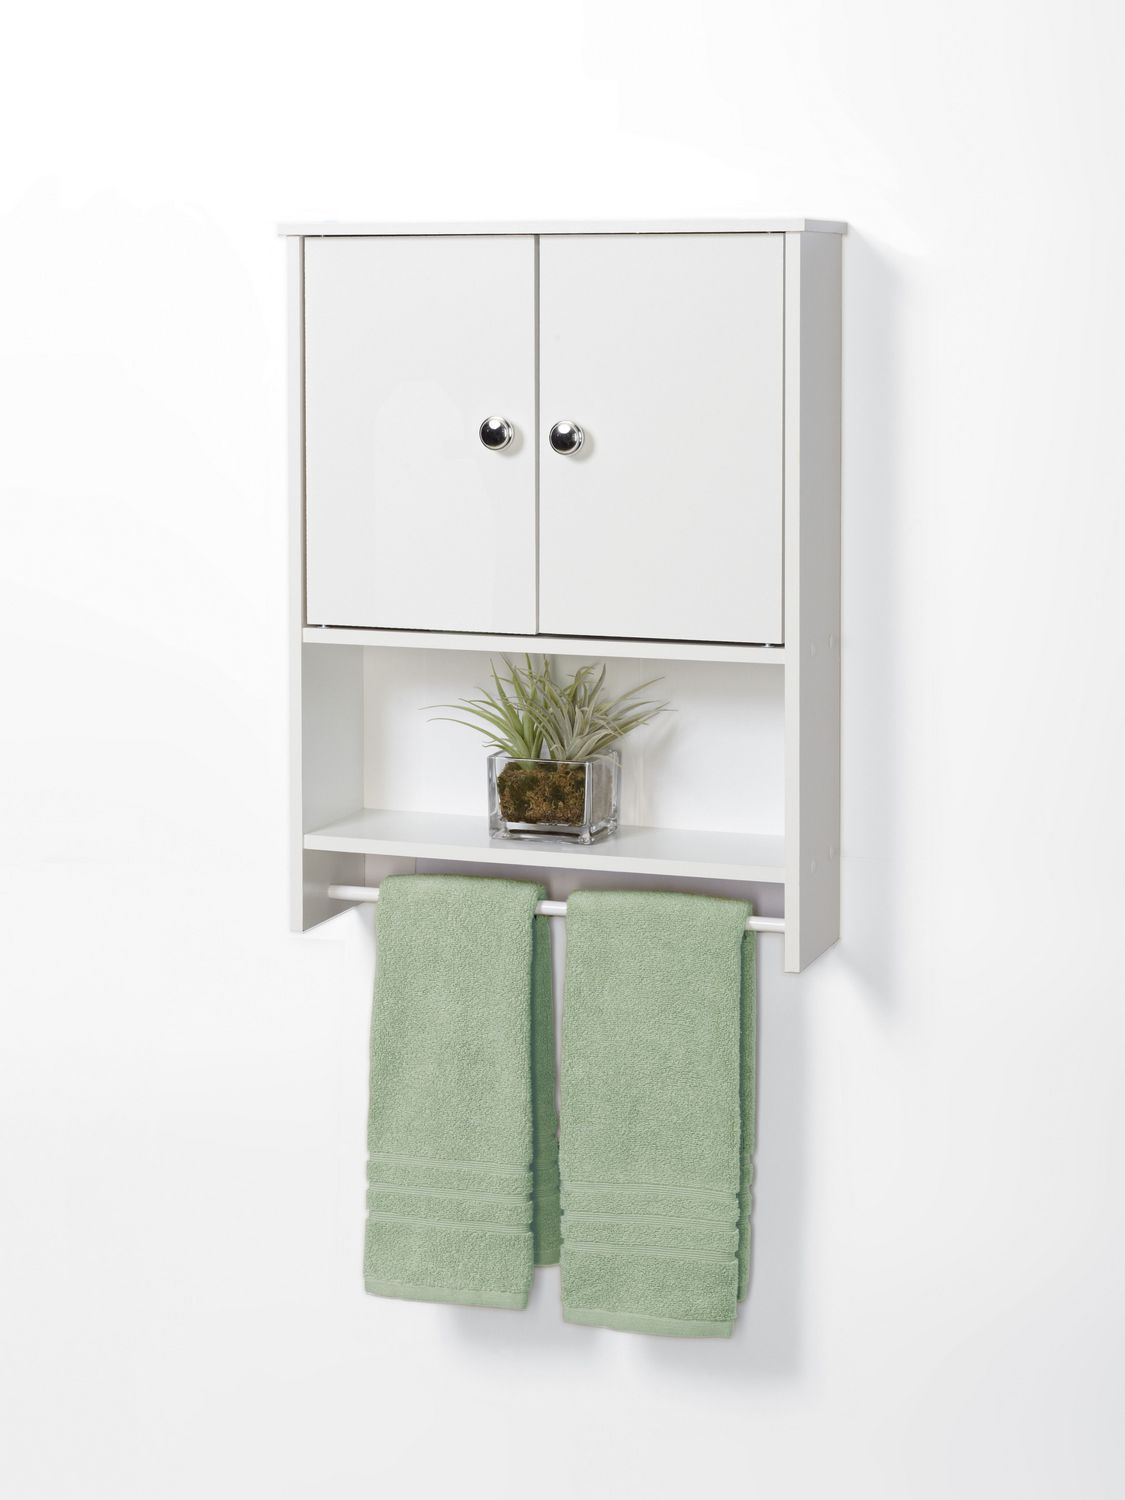 mainstays white wood 2-door wall cabinet | walmart.ca